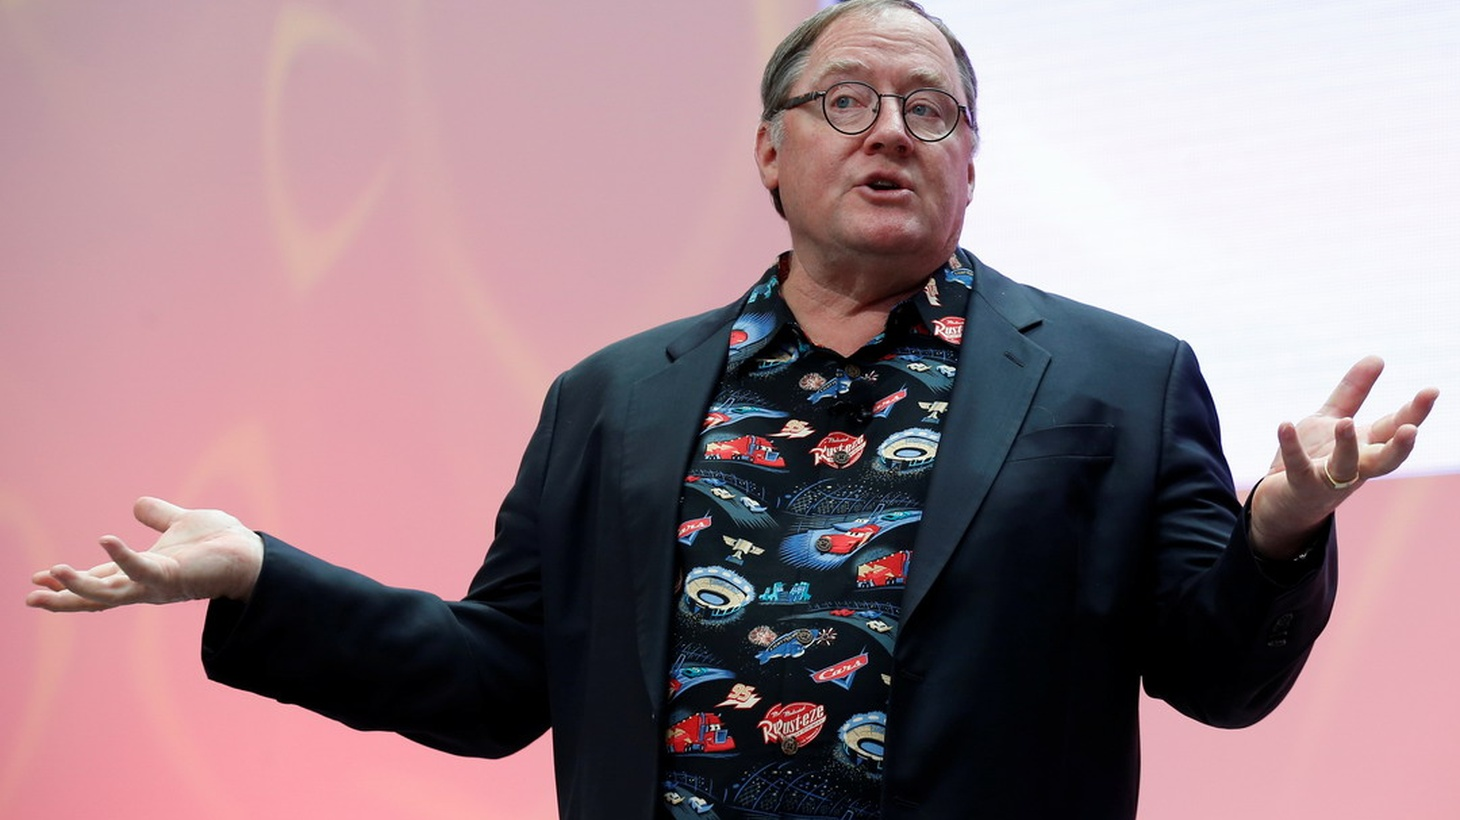 After a late Friday news dump, we re-banter about John Lasseter's departure from Disney, discuss why he had to go, and what this means for the world of animation. Plus, a look ahead to Tuesday's expected decision on the AT&T trial.